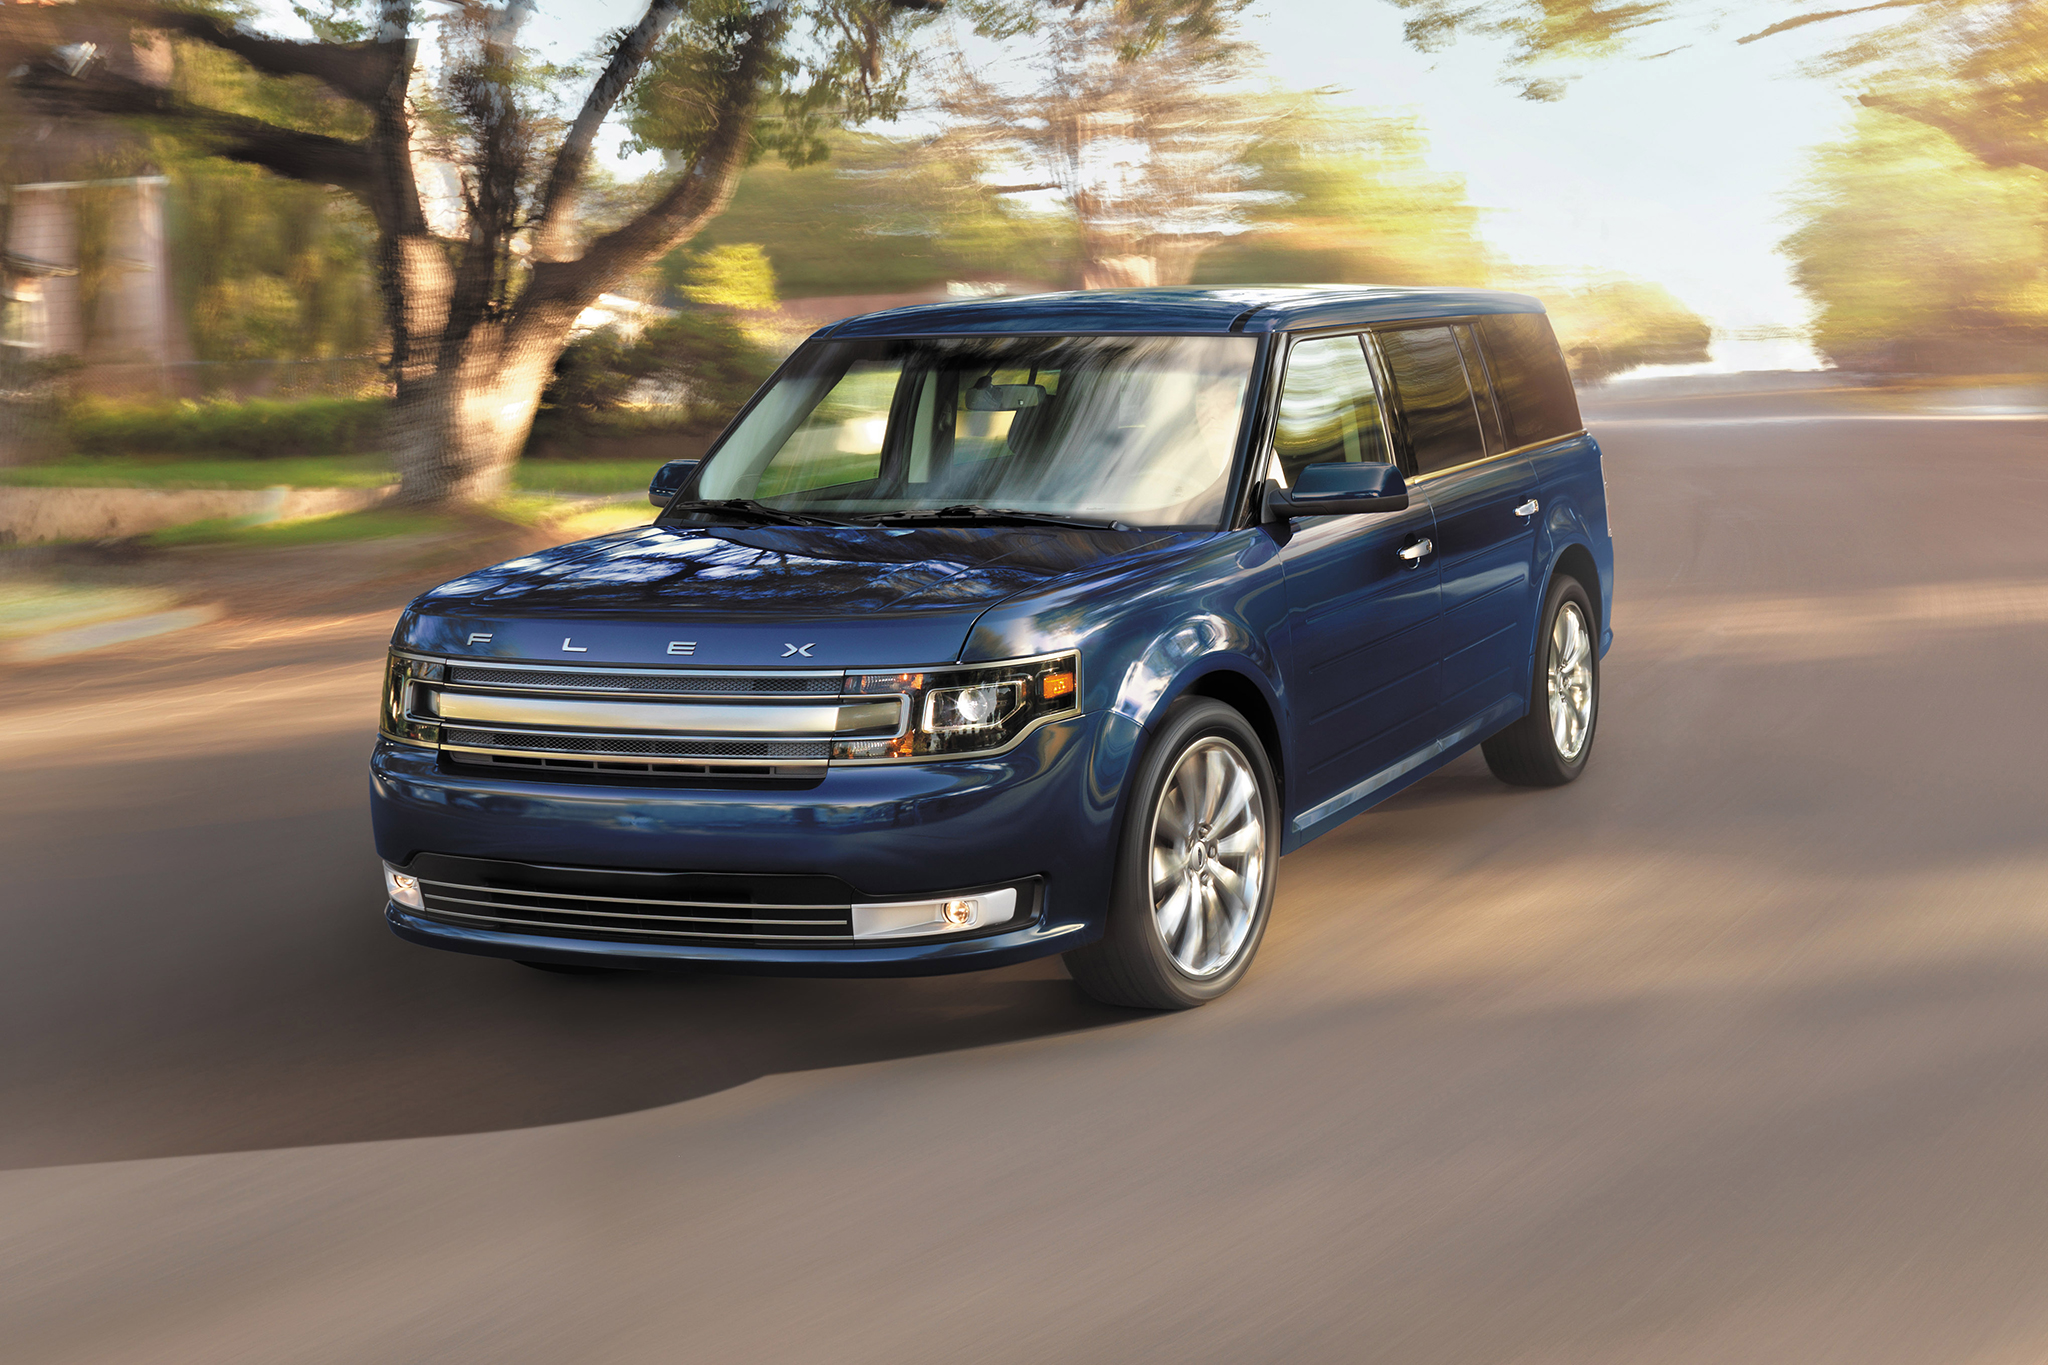 2016 ford flex pictures information and specs auto. Black Bedroom Furniture Sets. Home Design Ideas